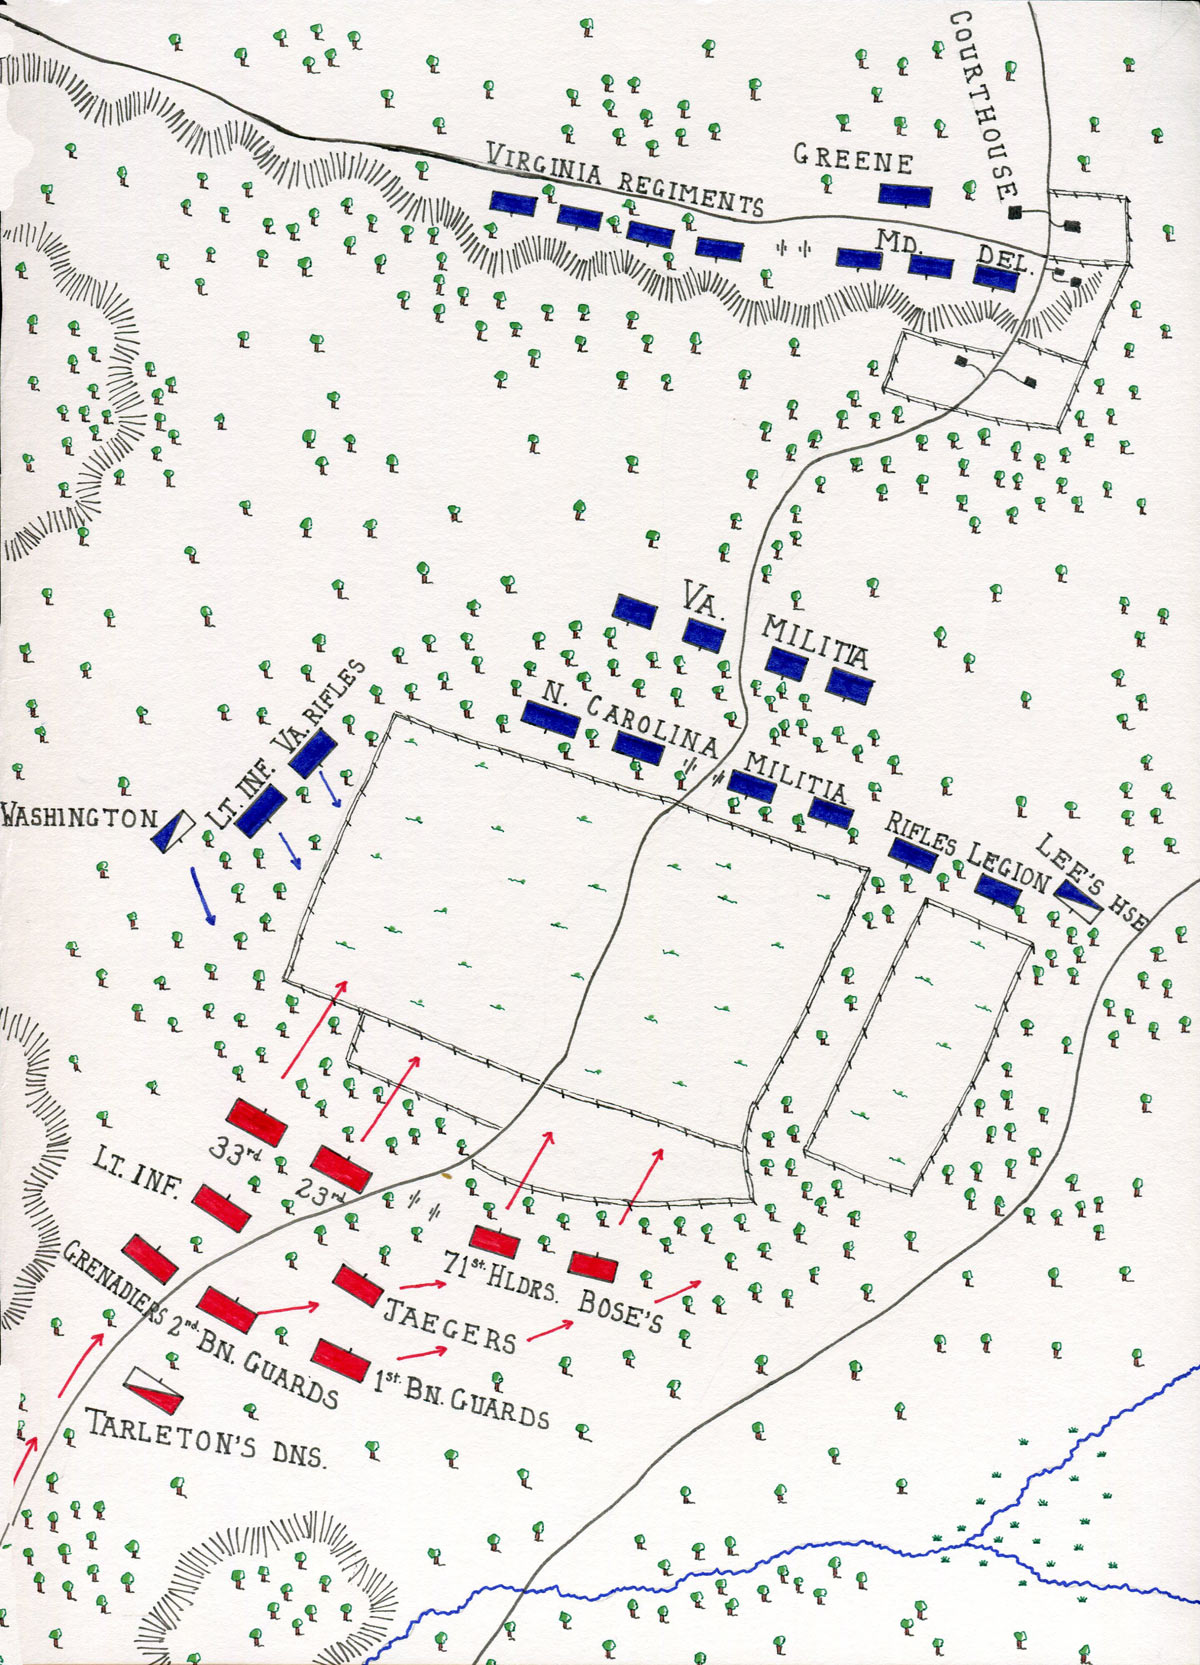 Map of the Battle of Guilford Courthouse on 15th March 1781 in the American Revolutionary War: map by John Fawkes